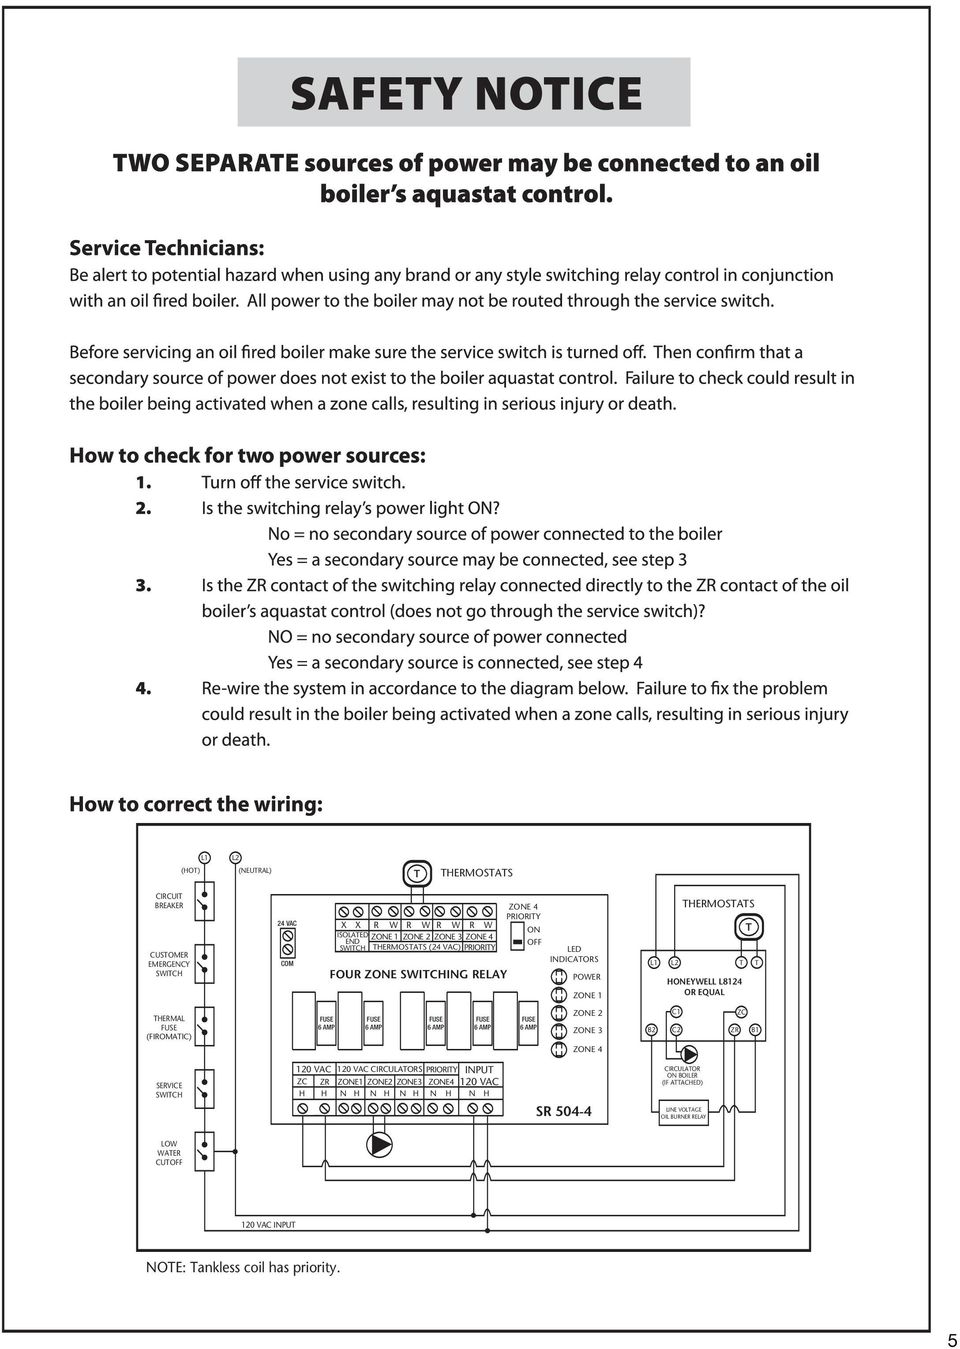 Basic Relay Diagram Blower Control Also Taco Zone Valve Wiring Diagram